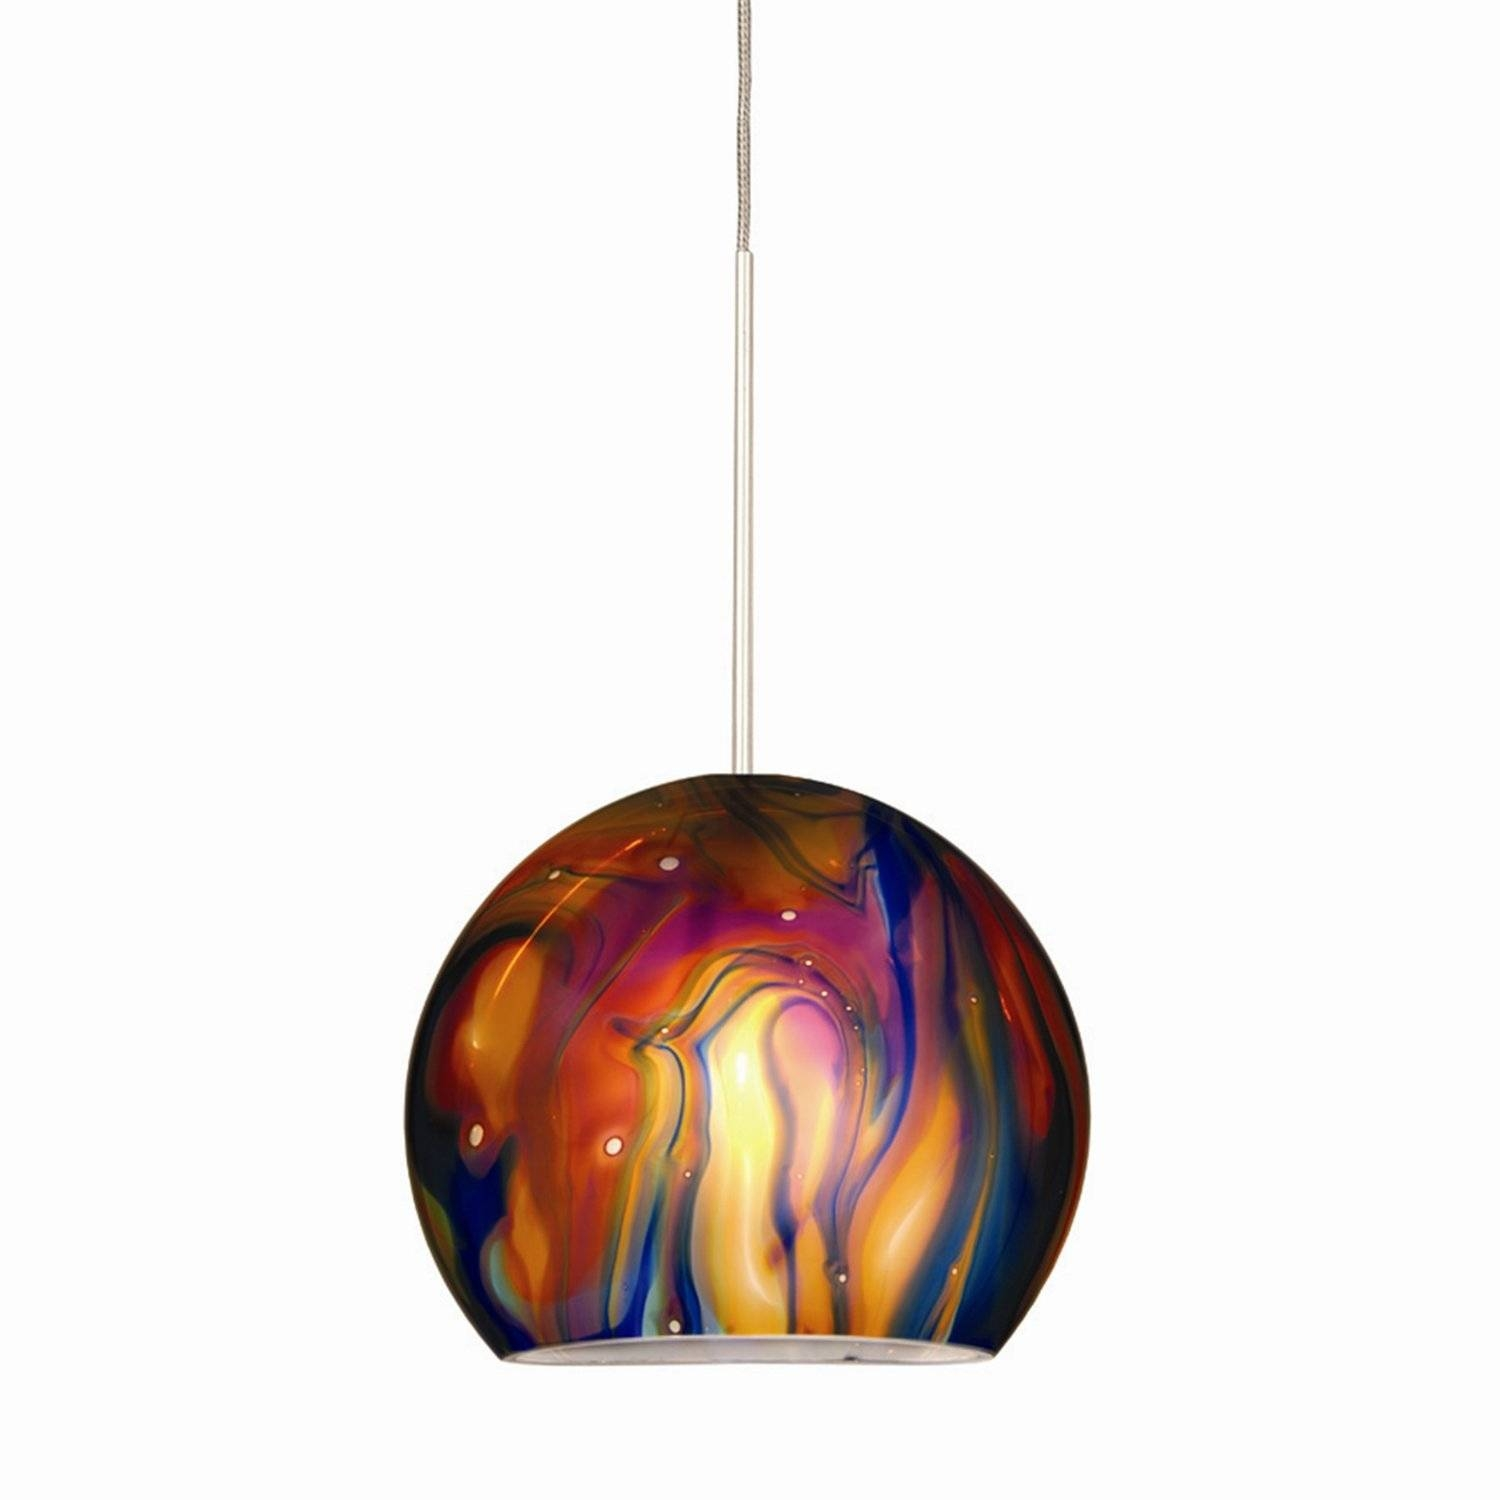 Blown Glass Pendant Lights Uk | Roselawnlutheran inside Hand Blown Glass Lights Fixtures (Image 5 of 15)